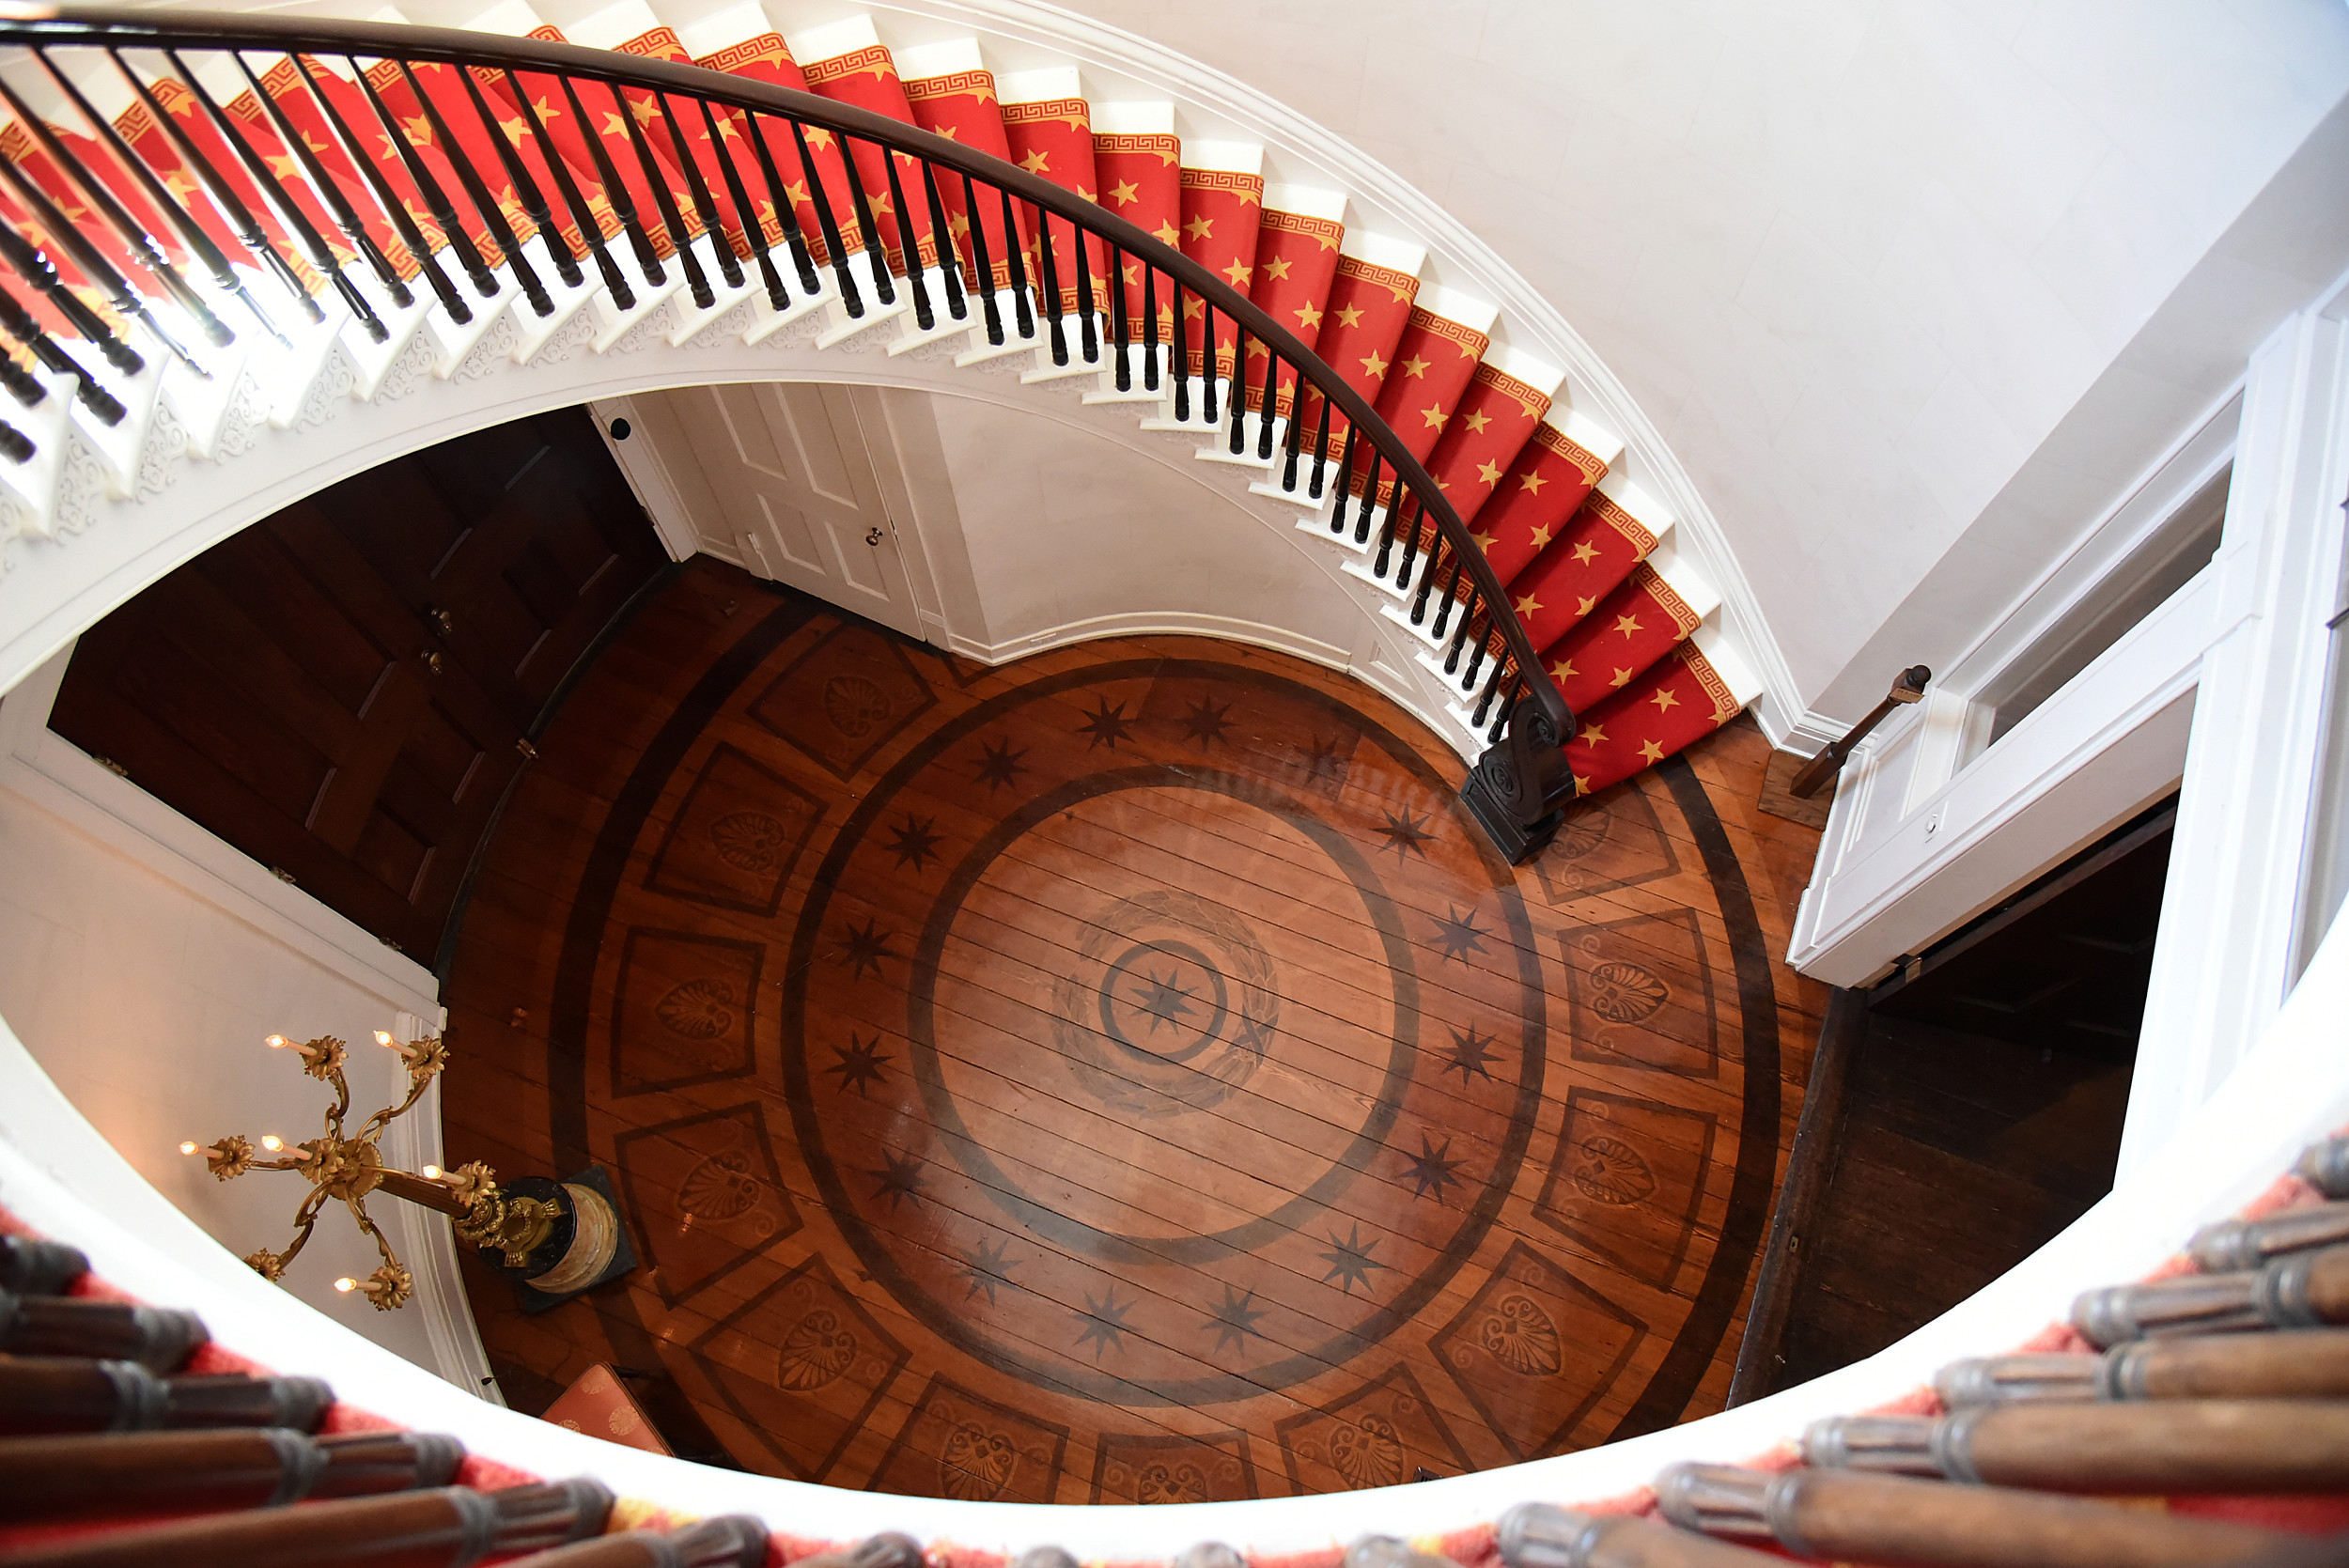 From atop a circular staircase in Millford Plantation, you can see detail from woodwork that is 175 years old that even allows heat to ventilate from the floor, something new when the home was built in 1841.